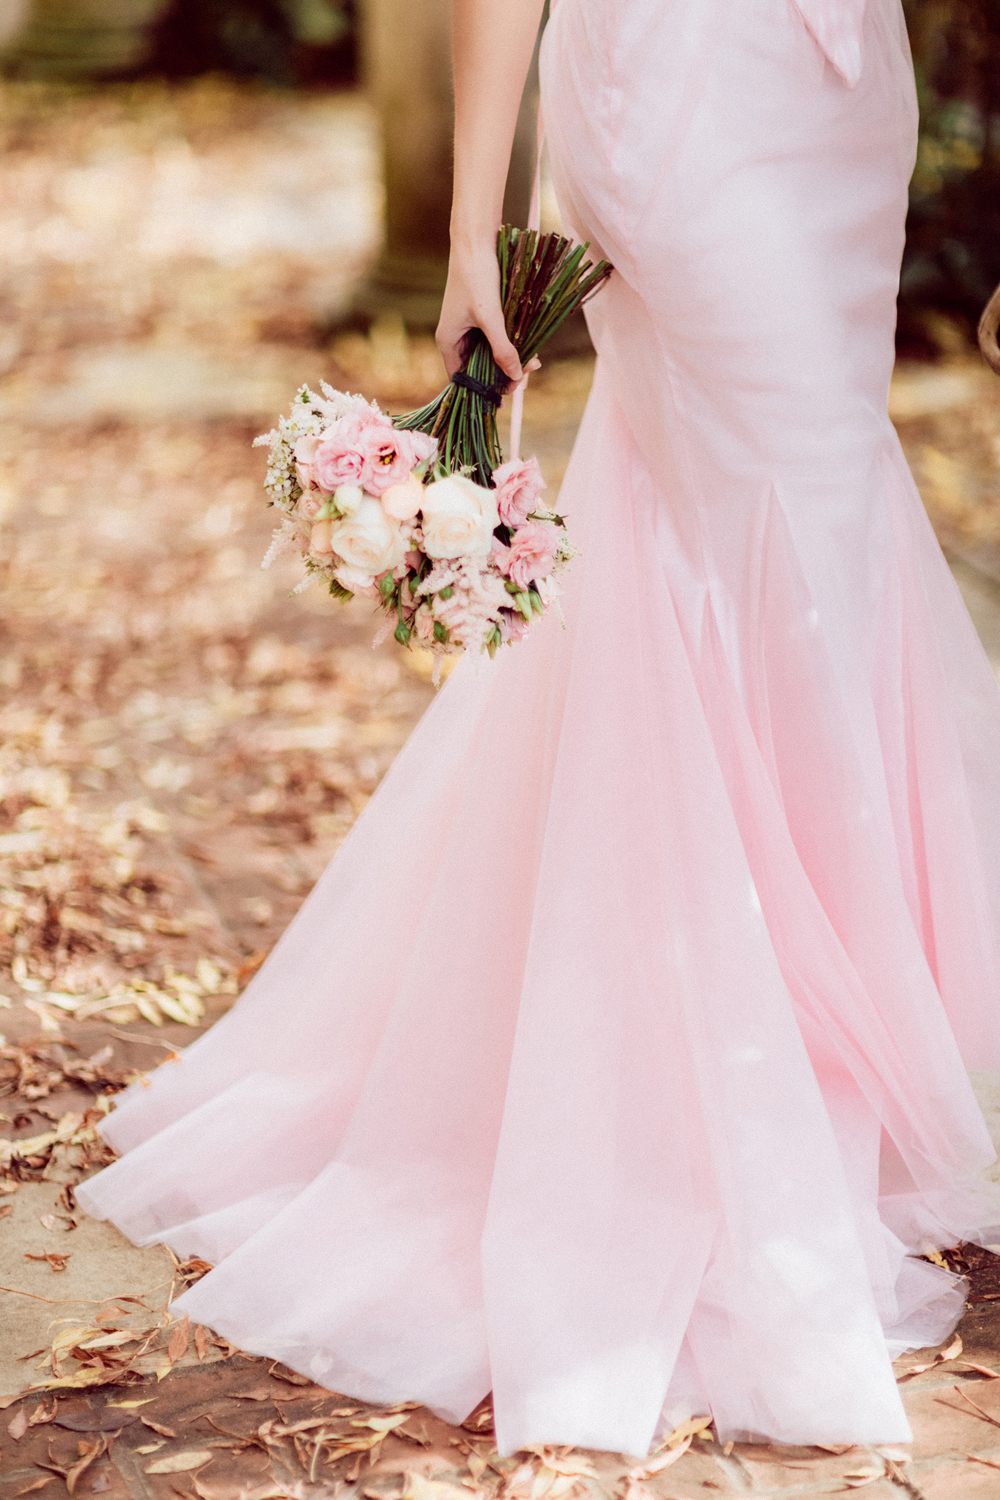 My Fair Lady Styled Shoot - Chantal Mallett Bridal Couture